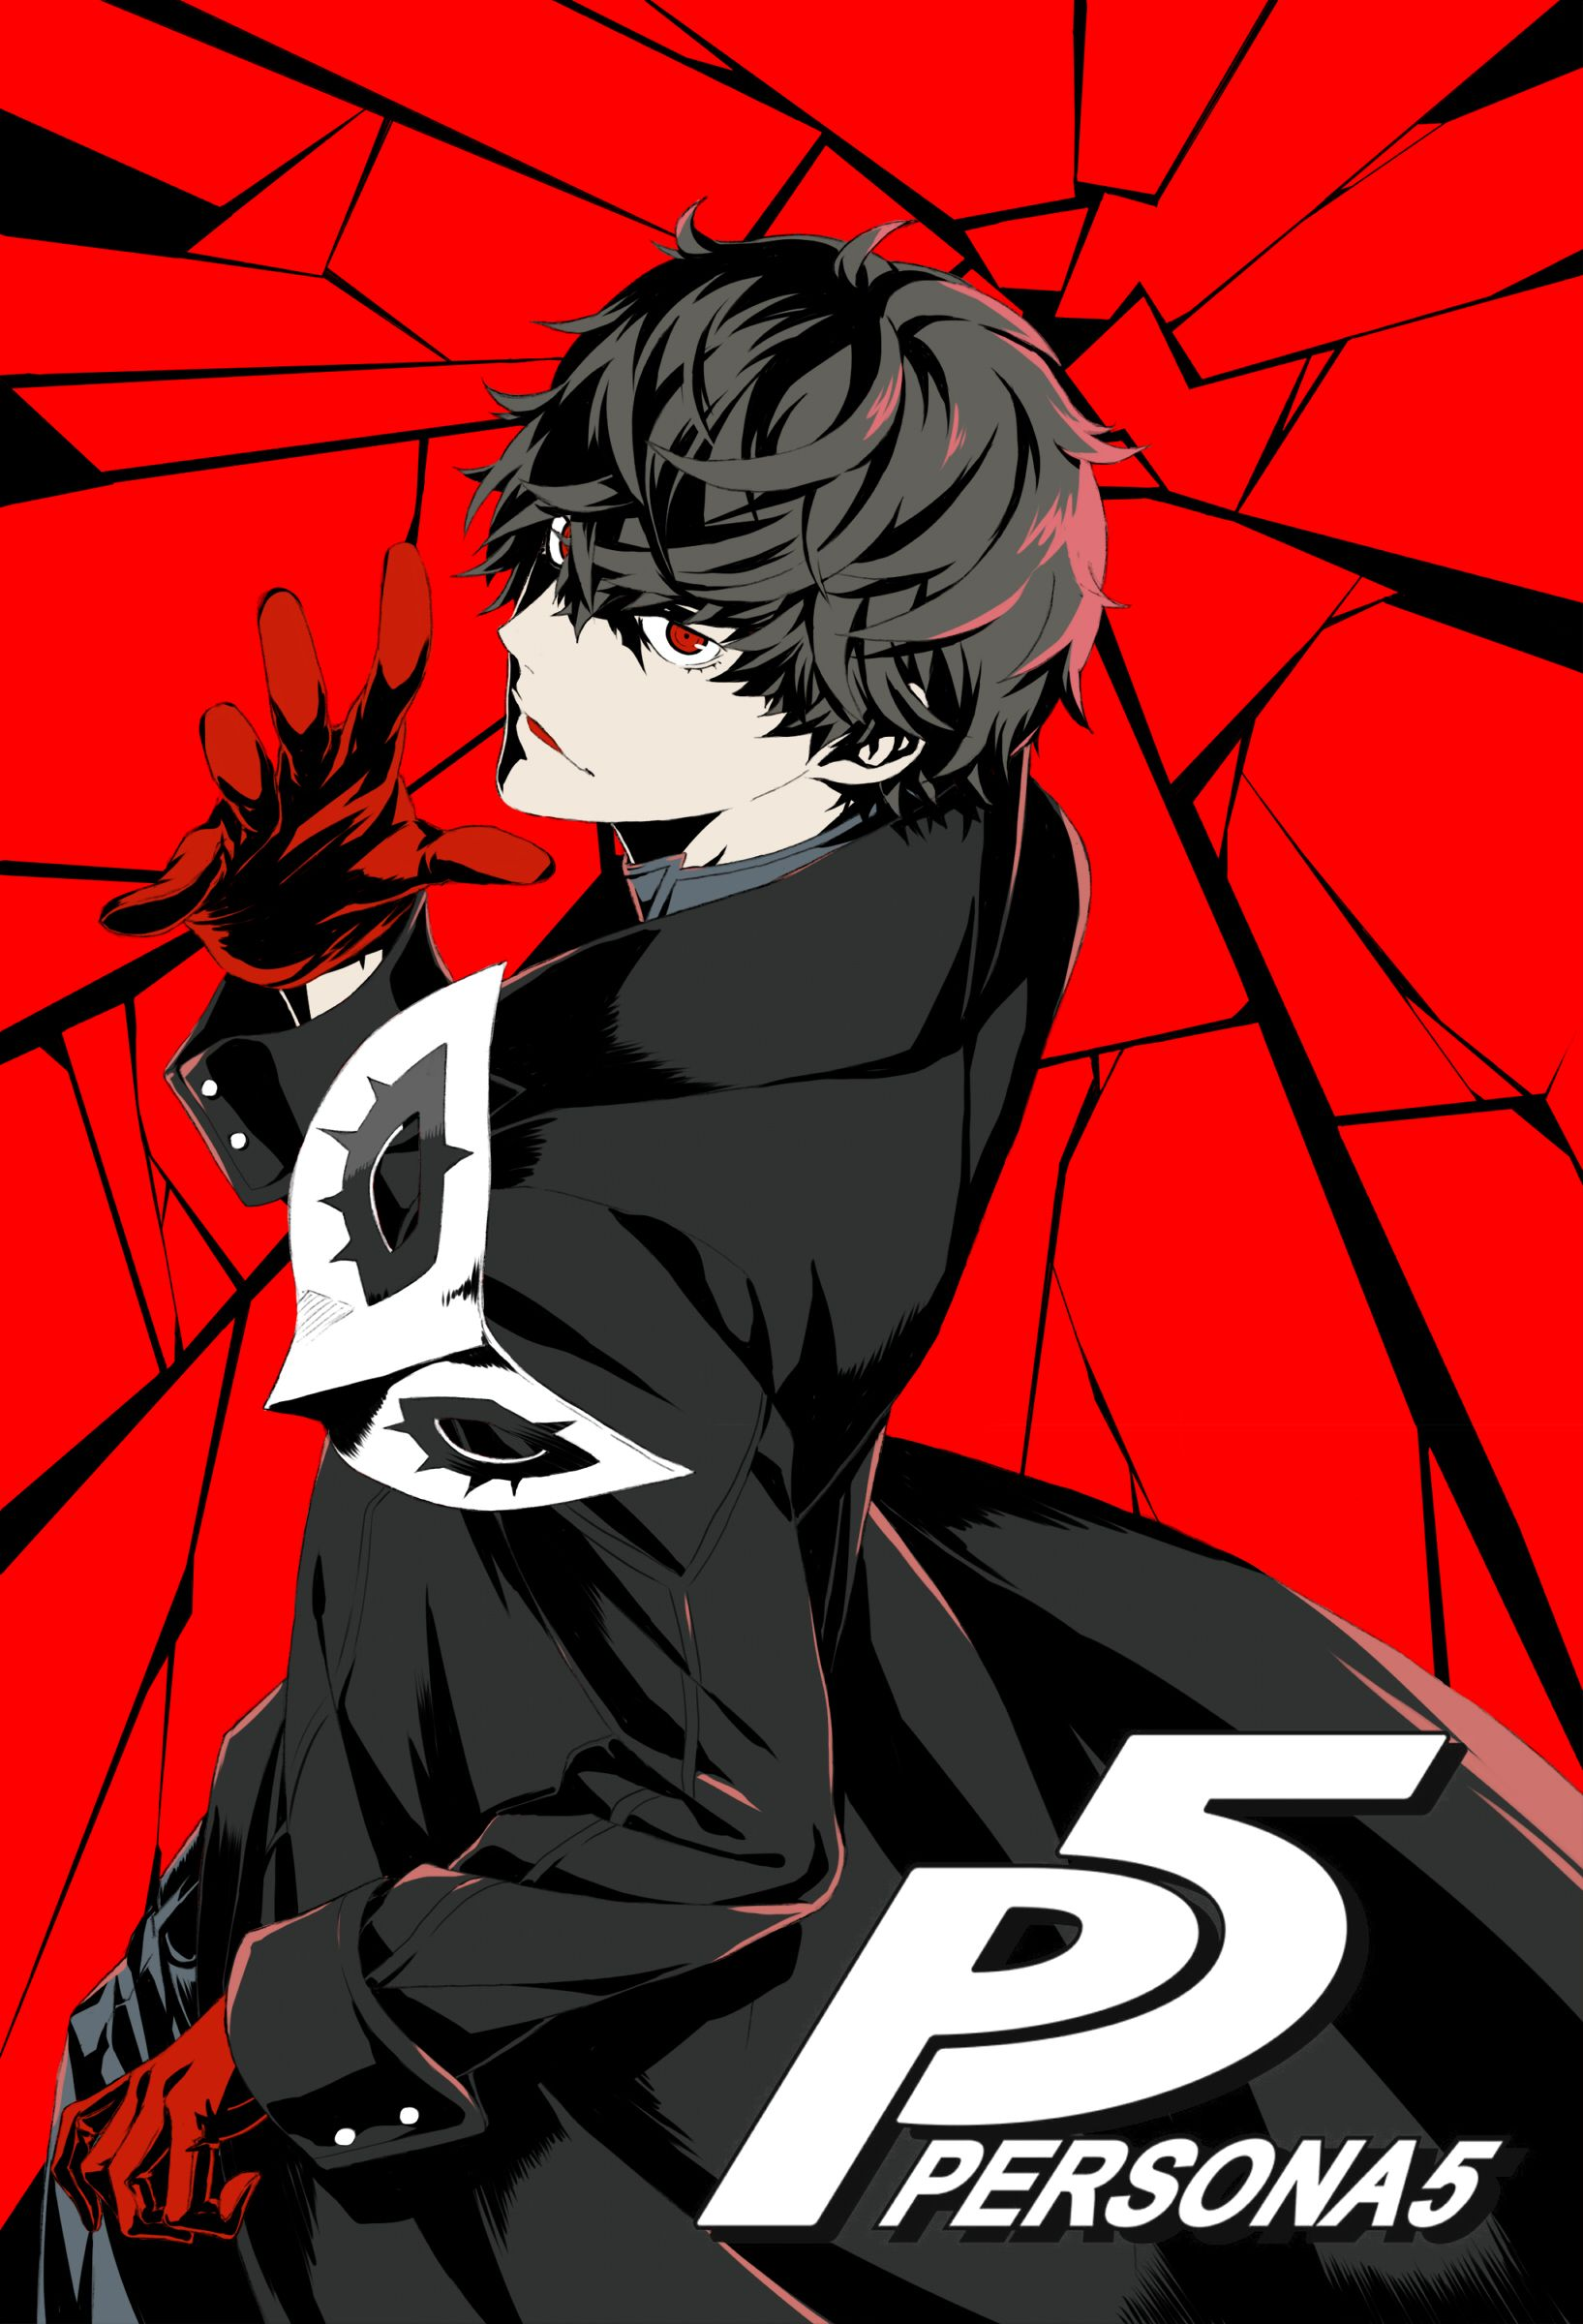 Persona 5 4k Wallpapers Top Free Persona 5 4k Backgrounds